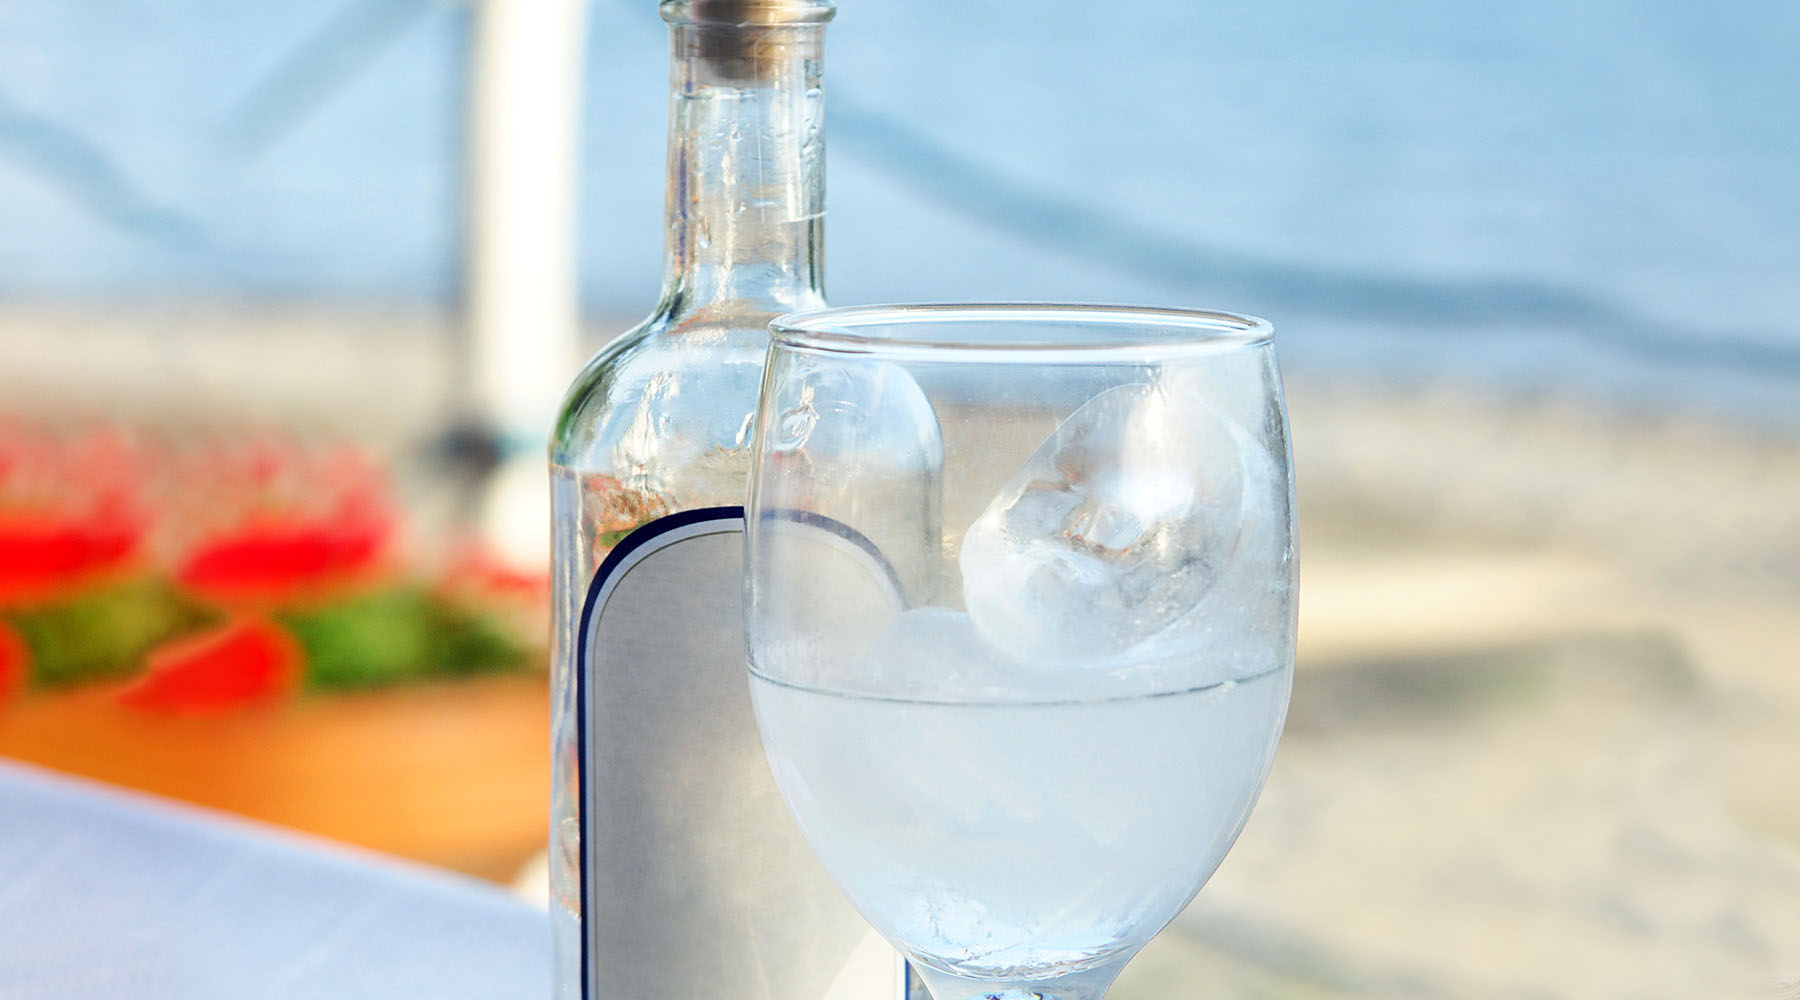 Enjoy some ouzo while you're in Greece!